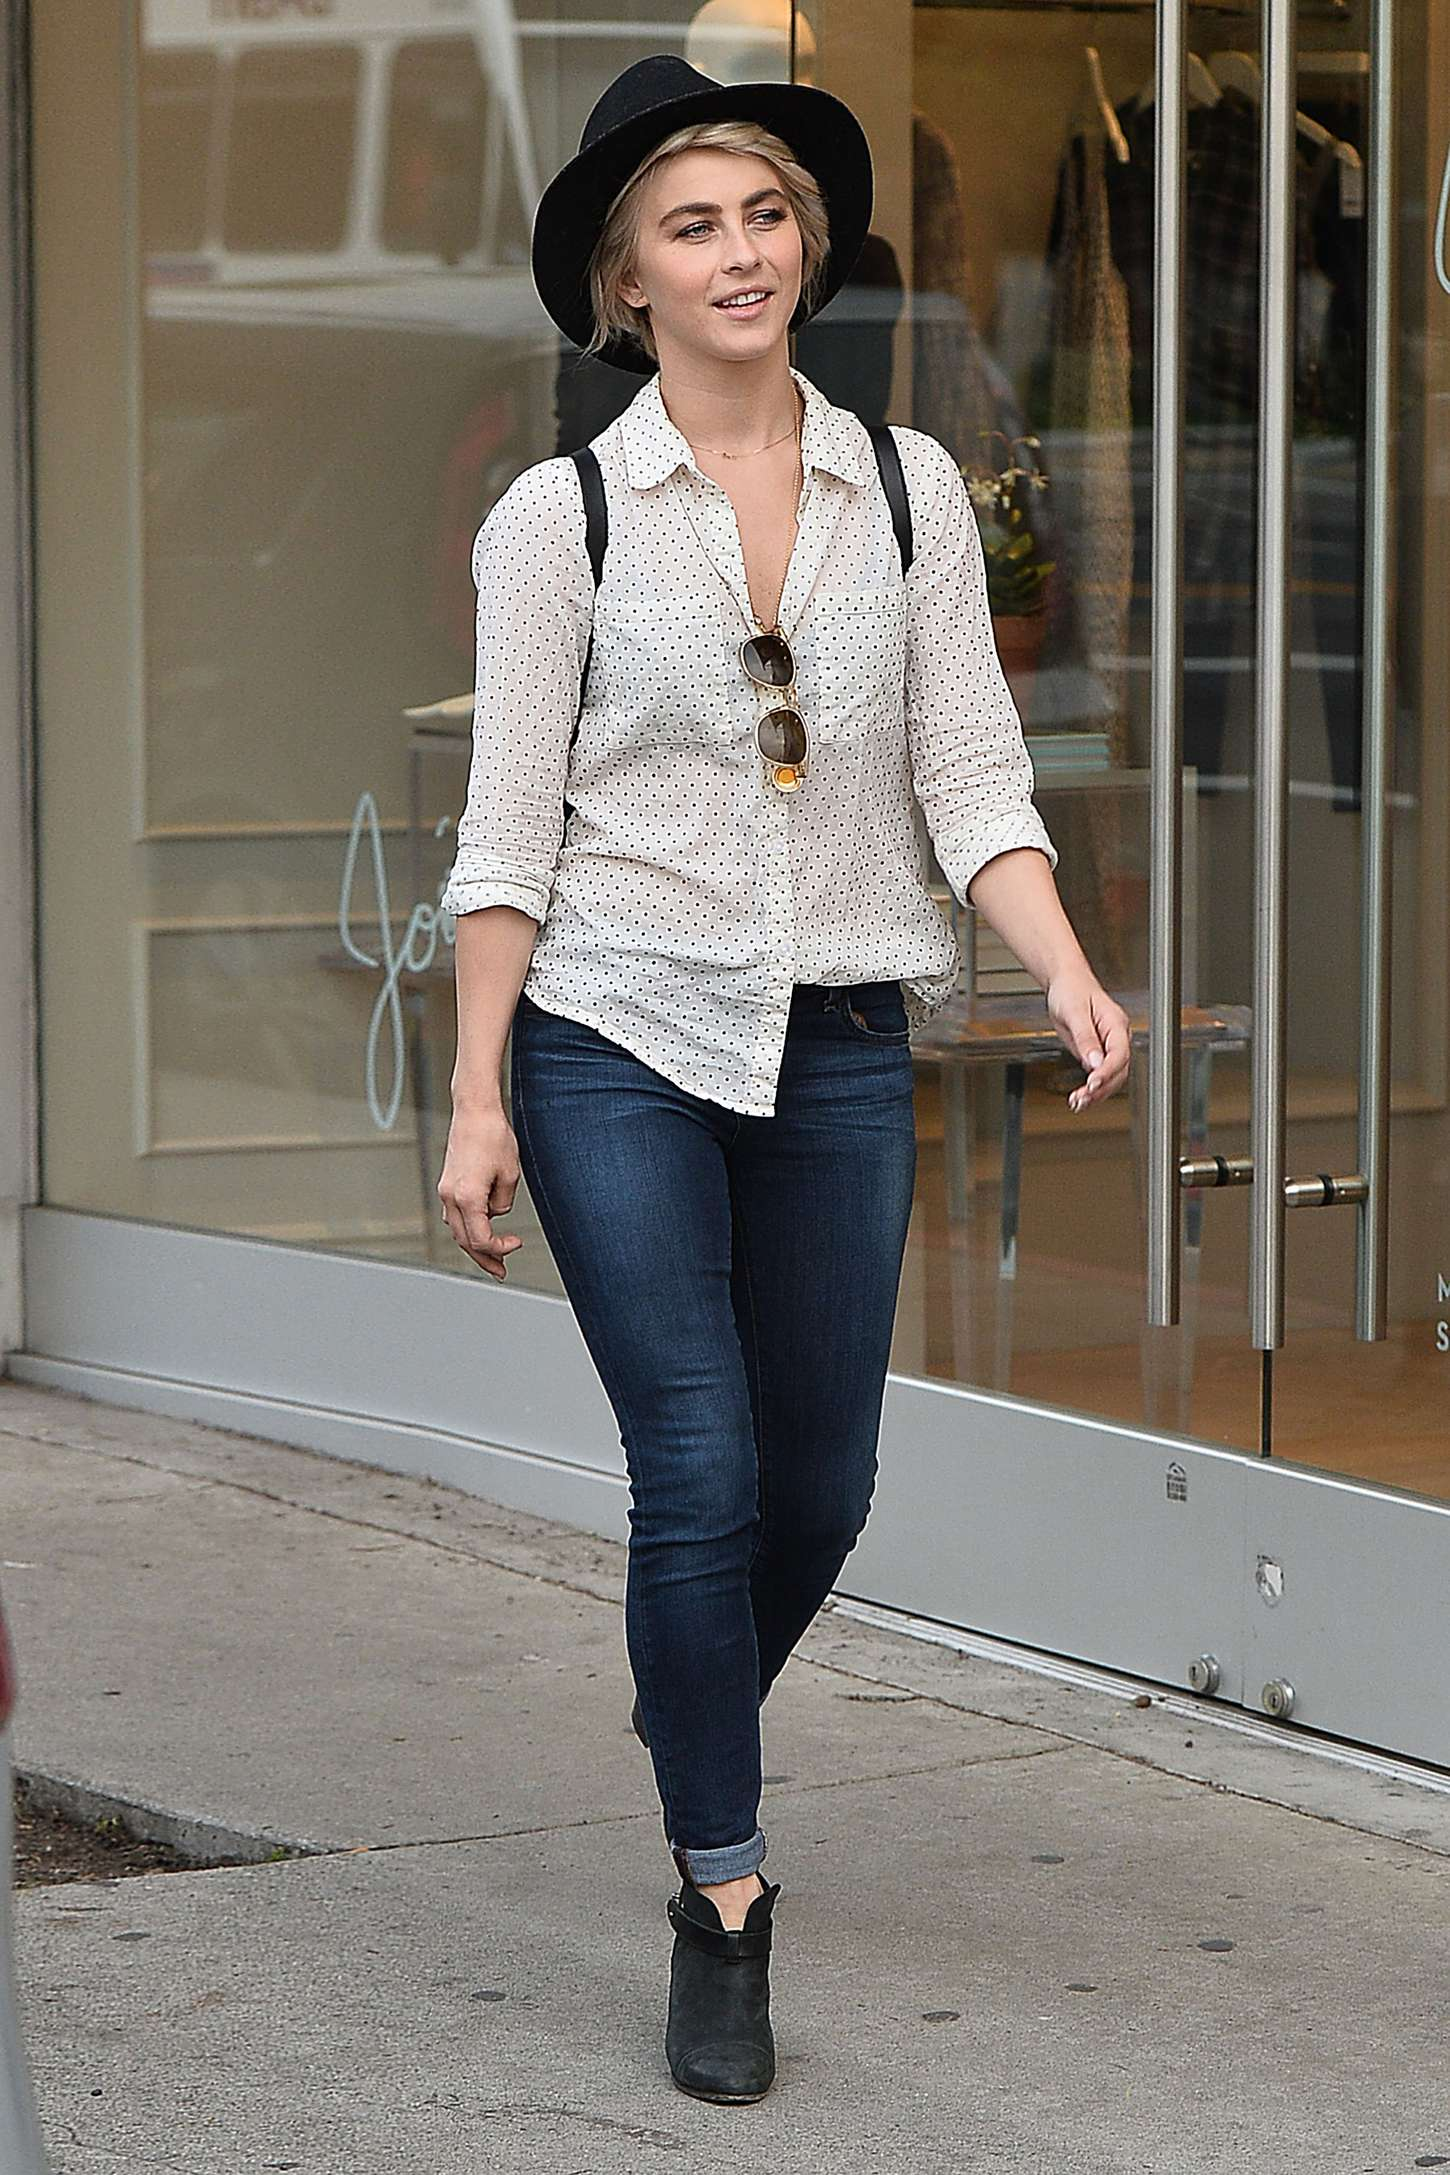 http://www.gotceleb.com/wp-content/uploads/photos/julianne-hough/out-and-about-in-los-angeles/Julianne-Hough-in-Tight-Jeans--07.jpg Julianne